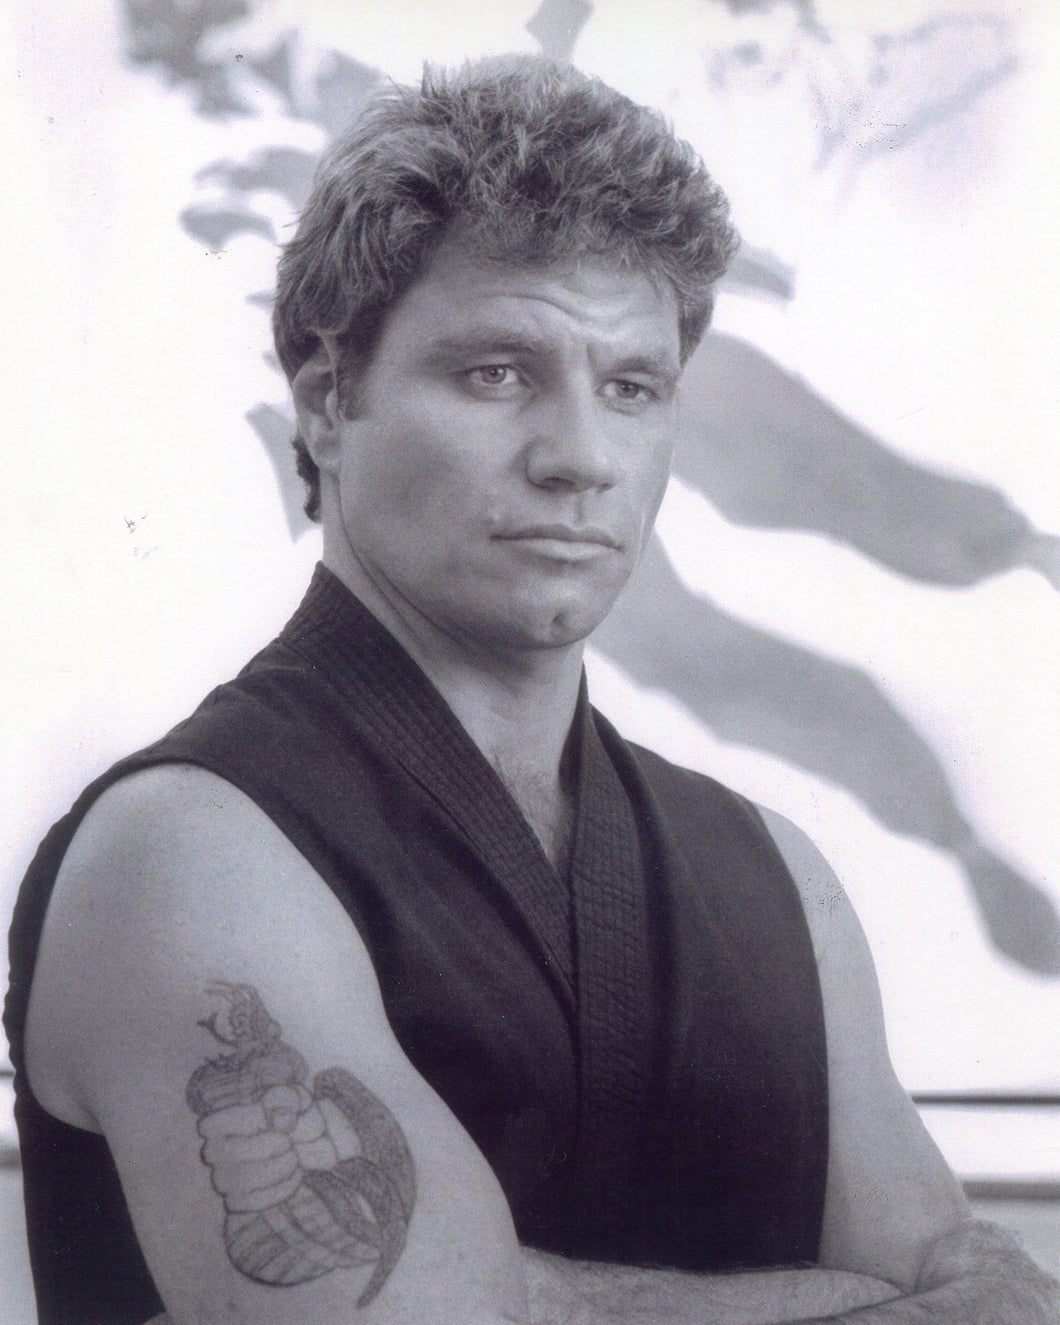 Martin Kove - Signed Karate Kid Image #1 (8x10, 11x14)